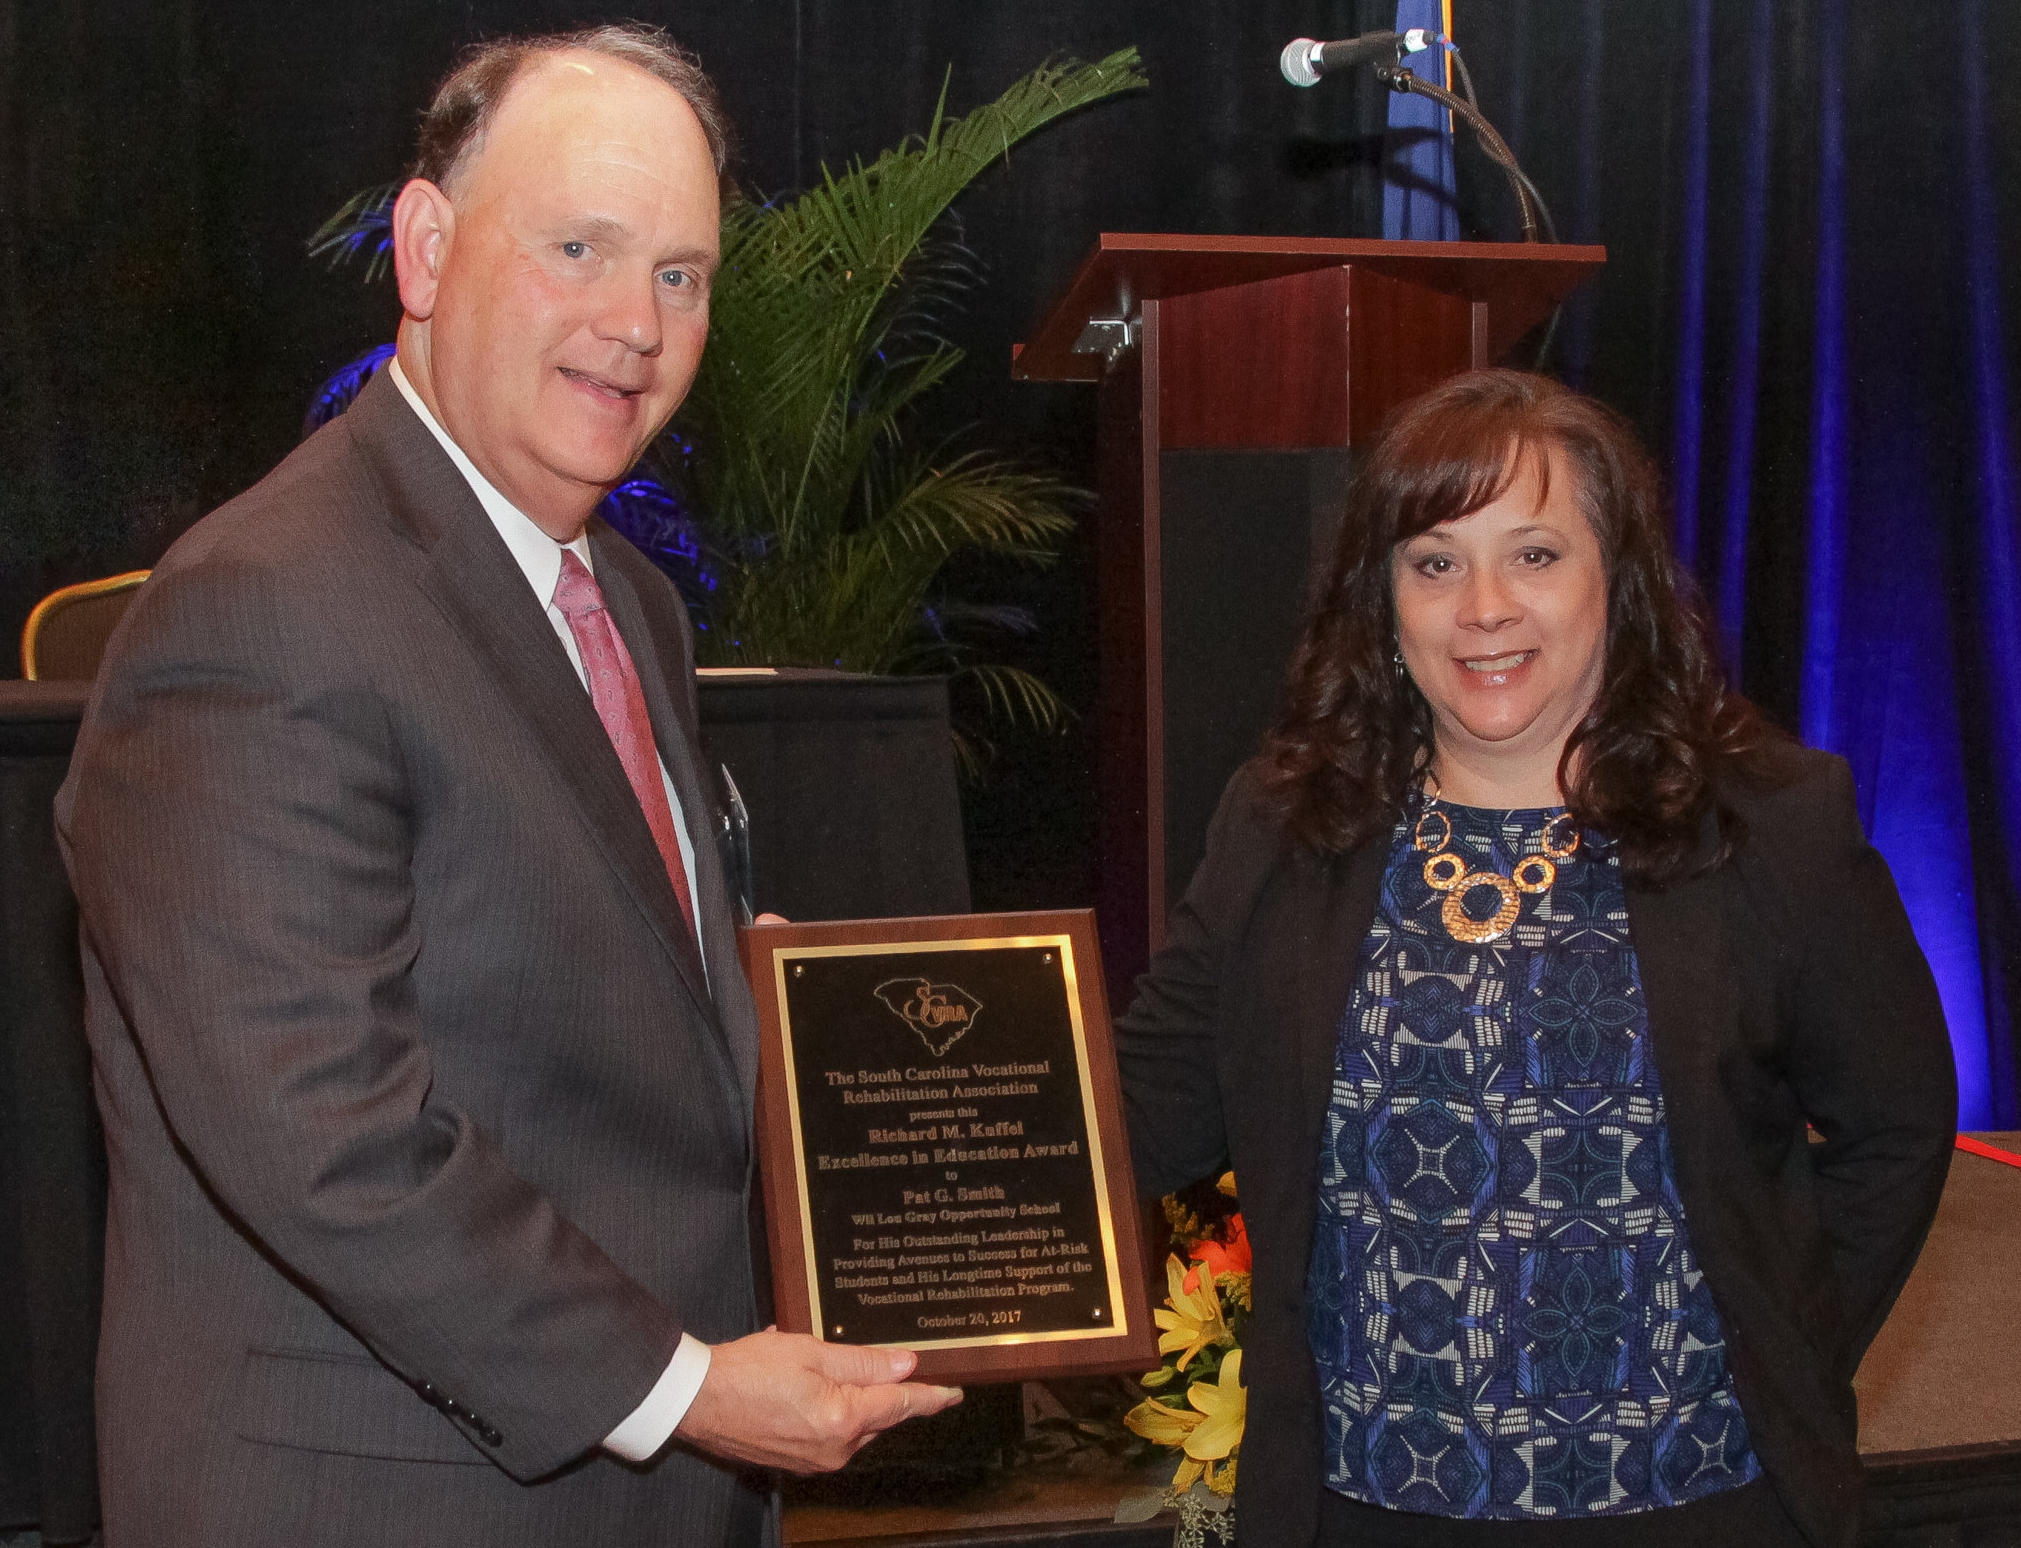 Pat G. Smith (left), Director of the Wil Lou Gray Opportunity School in West Columbia, receives the Richard M. Kuffel Excellence in Education Award from Laura Spears, VR Transition Services Coordinator.